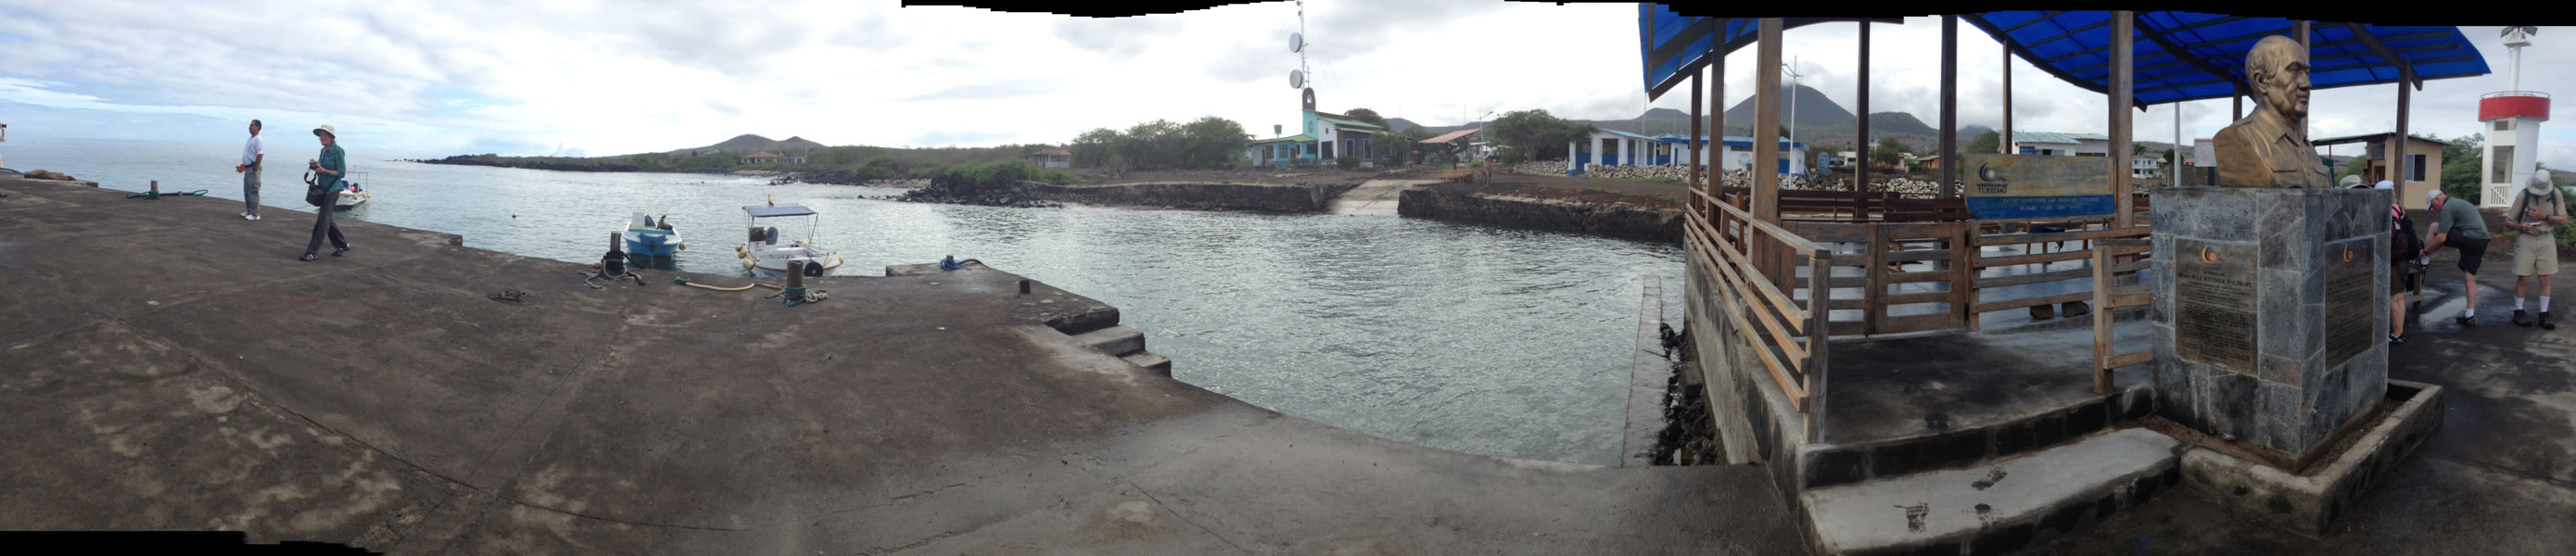 Here is a view of the town from the dock where we landed.